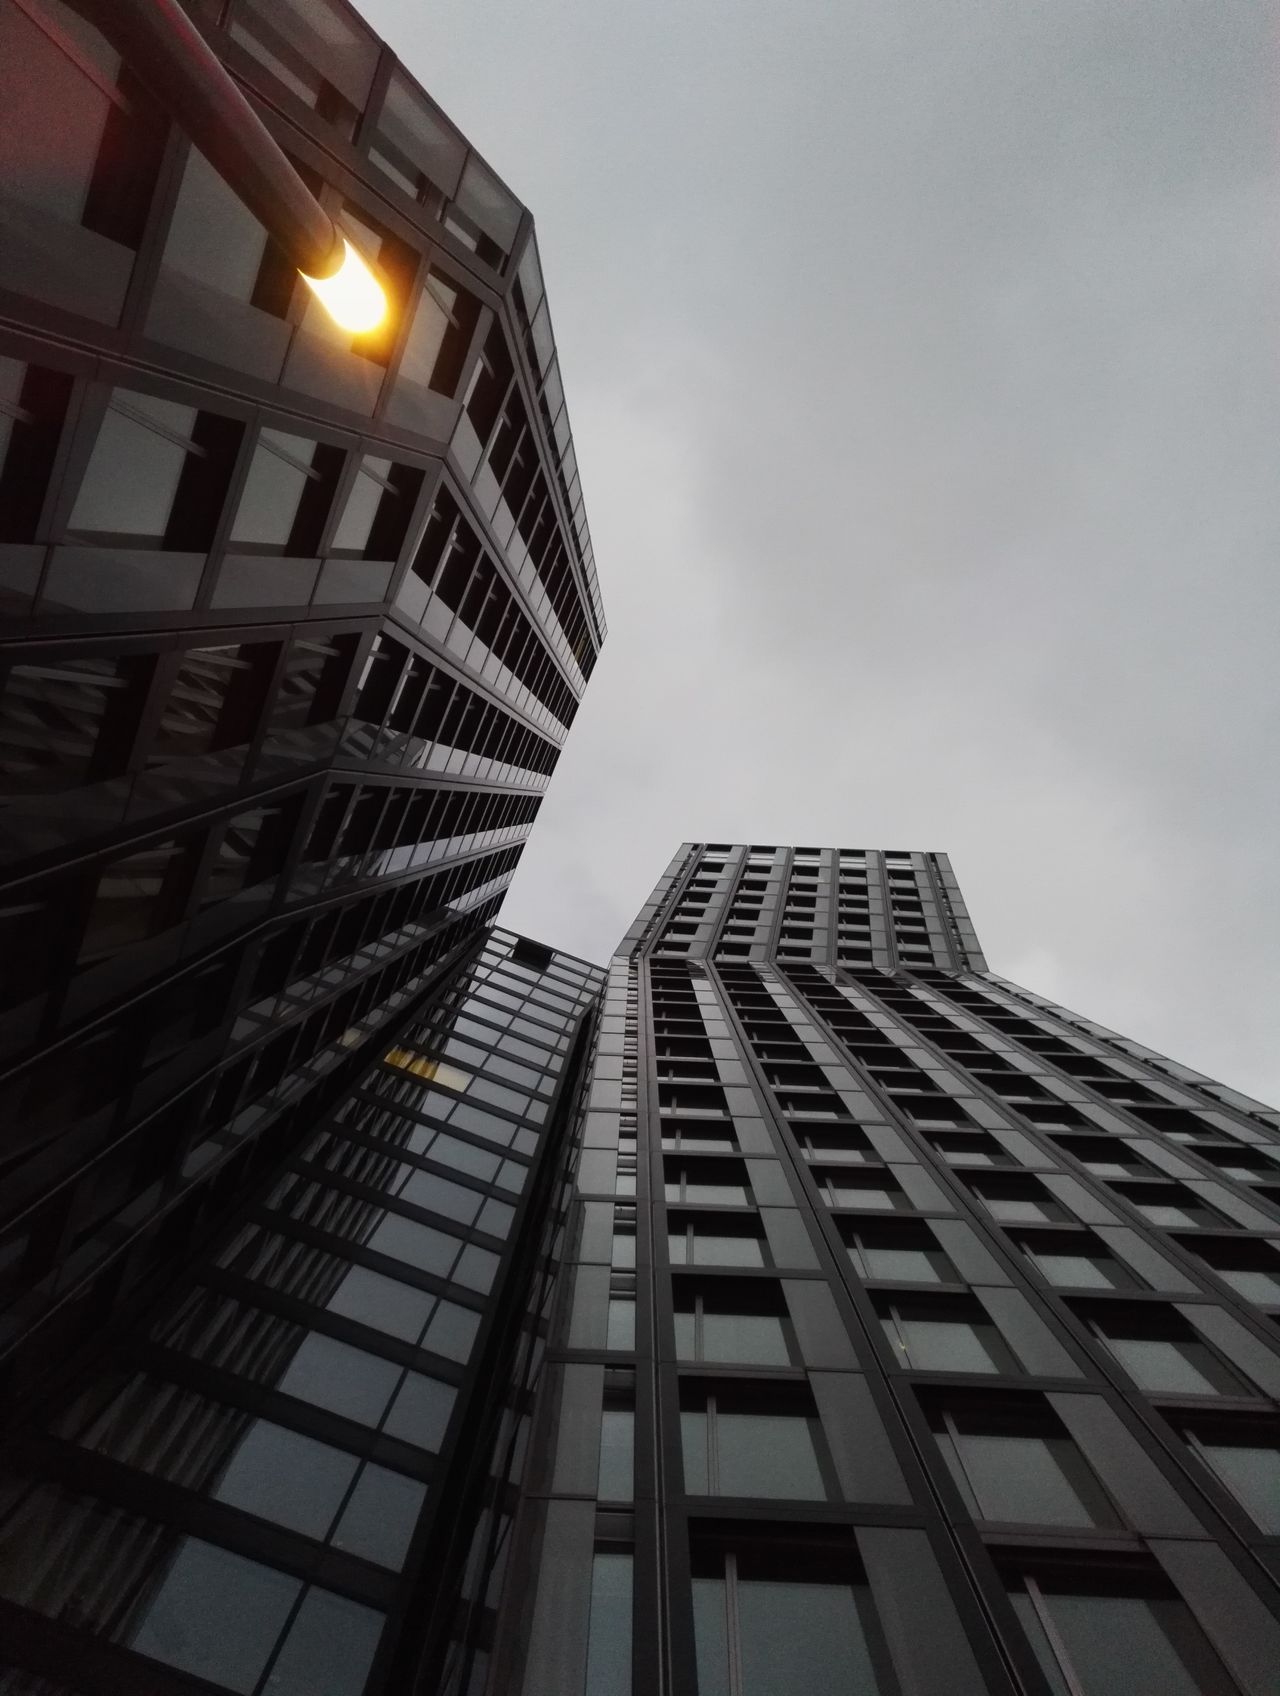 Architecture City Building Exterior Built Structure Low Angle View Skyscraper Sky No People Travel Destinations Outdoors Illuminated Day Hamburg Reeperbahn  Hochhaus NewToEyeEmSmartphone Details No Edit/no Filter Civilization Details And Colors Urban Photography Skyscrapers Germany Metropolitan